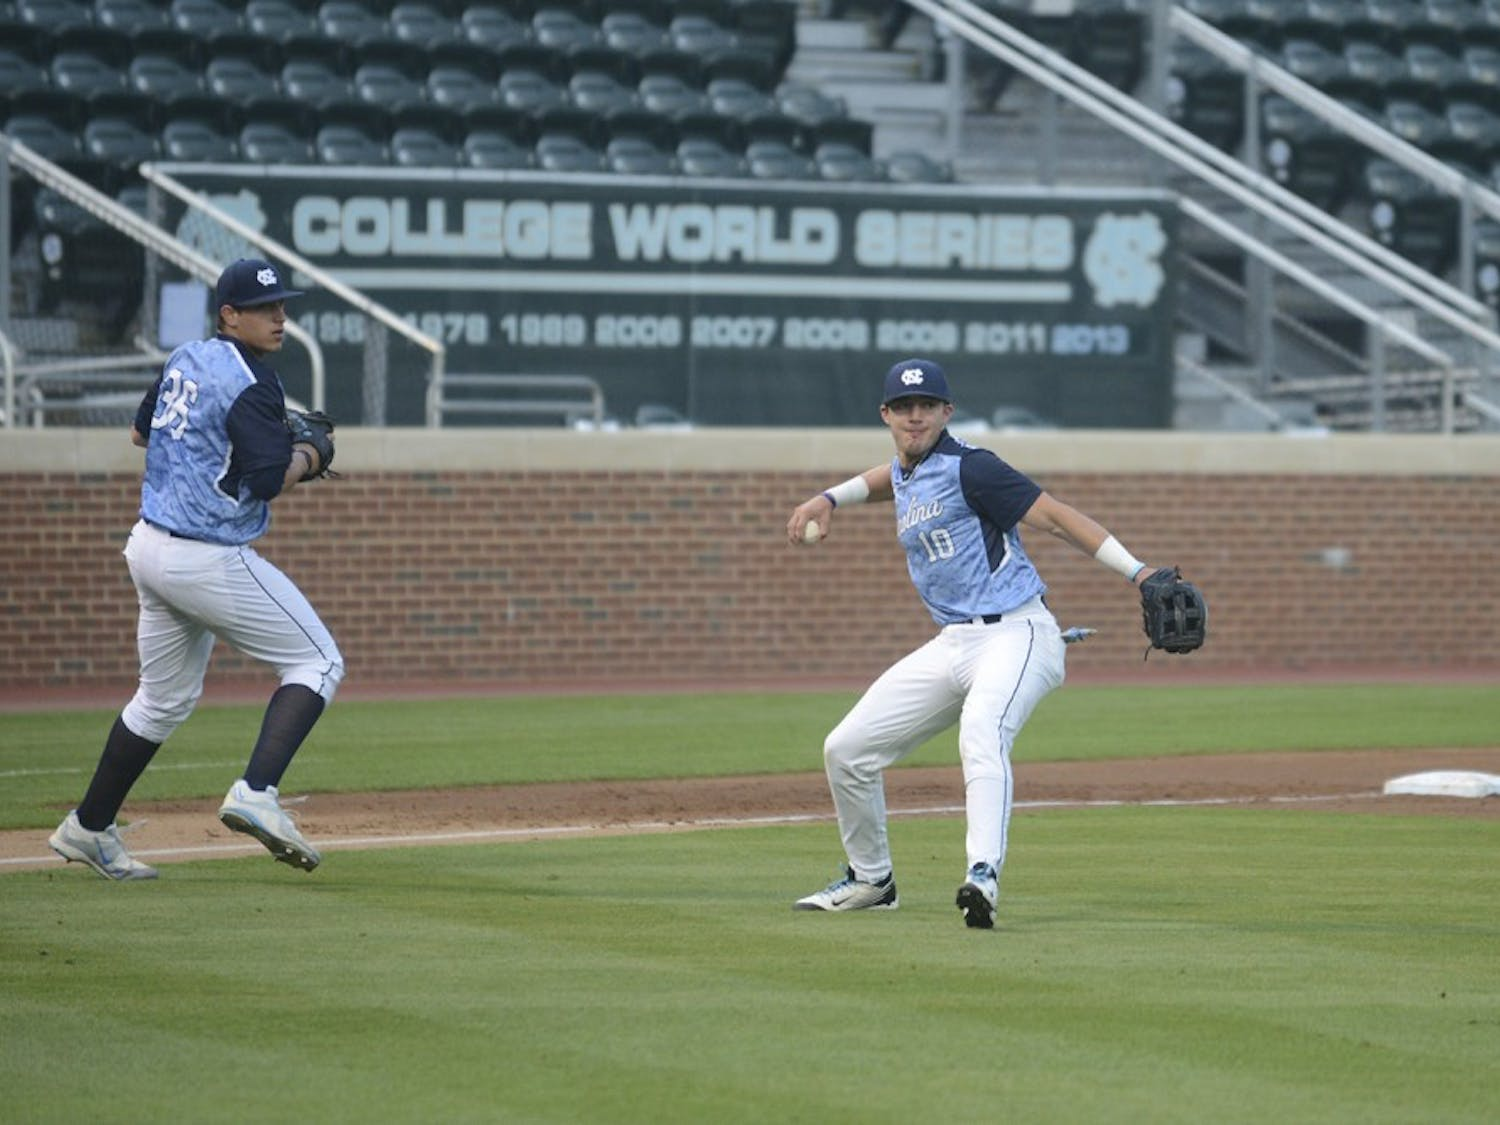 UNC freshman third baseman Zack Gahagan (10) has no throw on a lucky swinging bunt in Tuesday's game against High Point.